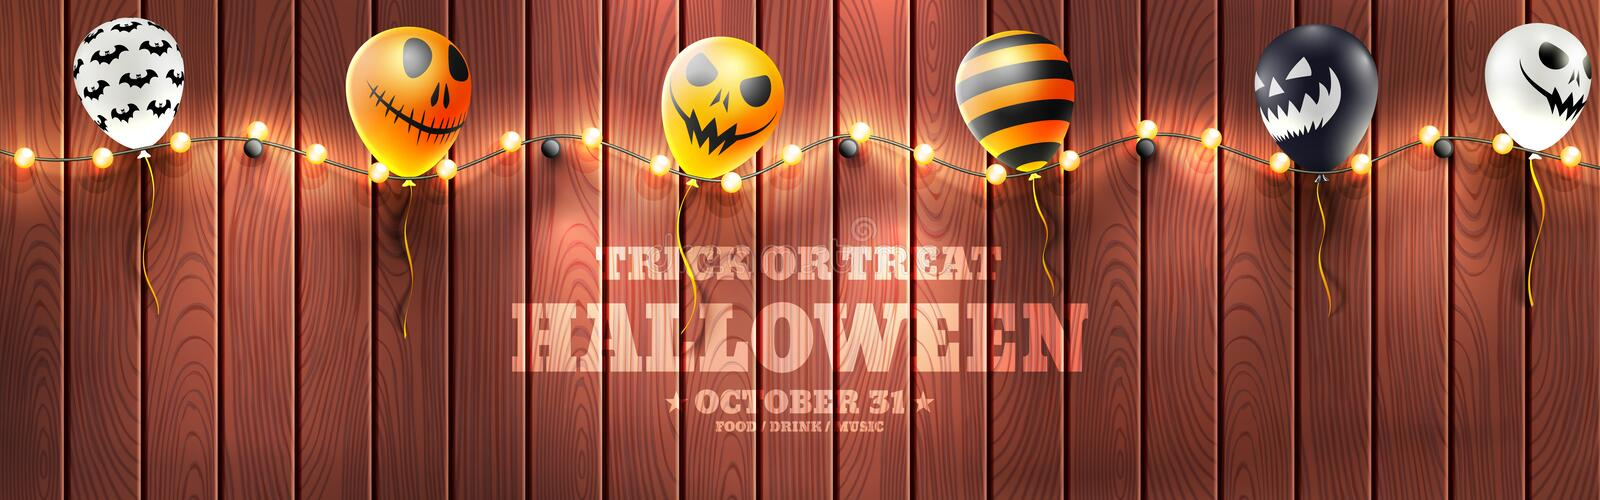 Halloween Banner with Halloween Ghost Balloons.Scary air balloons and string light on wood background.Website spooky or banner. Template.Vector illustration stock illustration